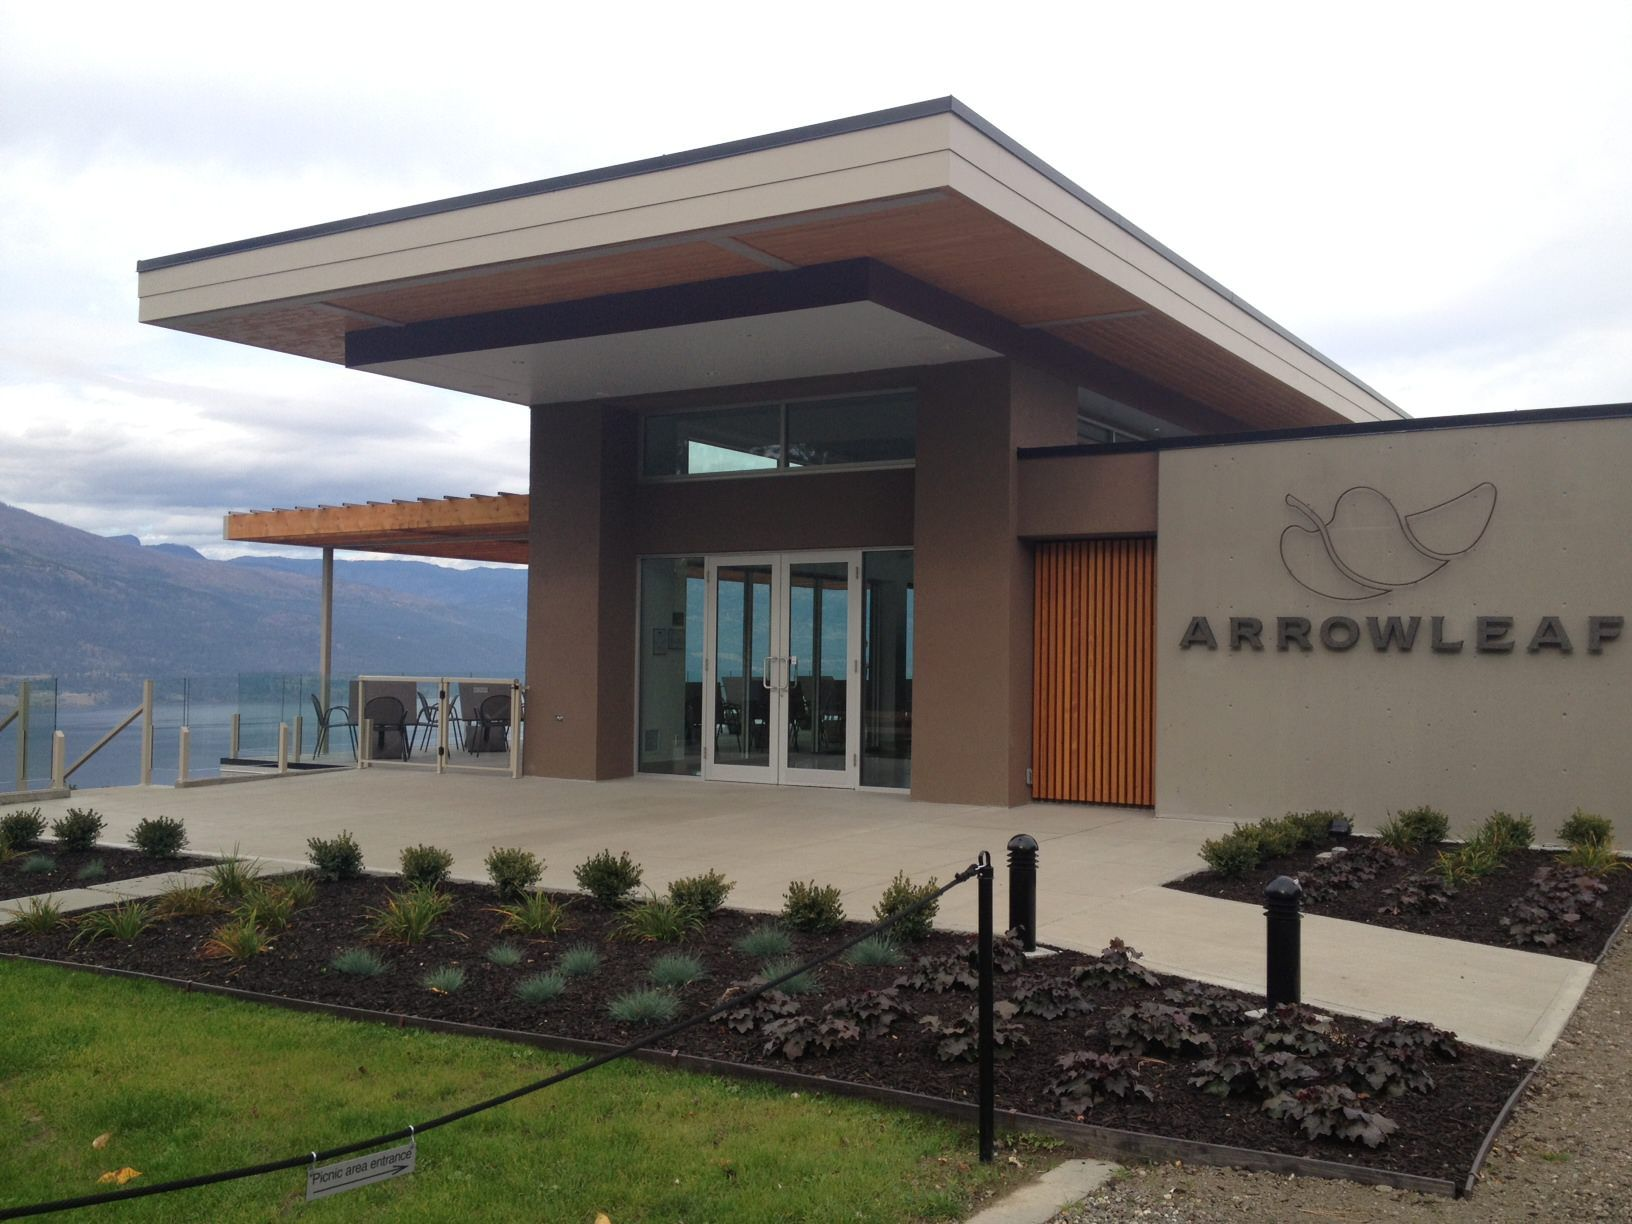 Arrowleaf Winery - Beautiful view of the lake from their awesome patio! & Arrowleaf Winery - Beautiful view of the lake from their awesome ...